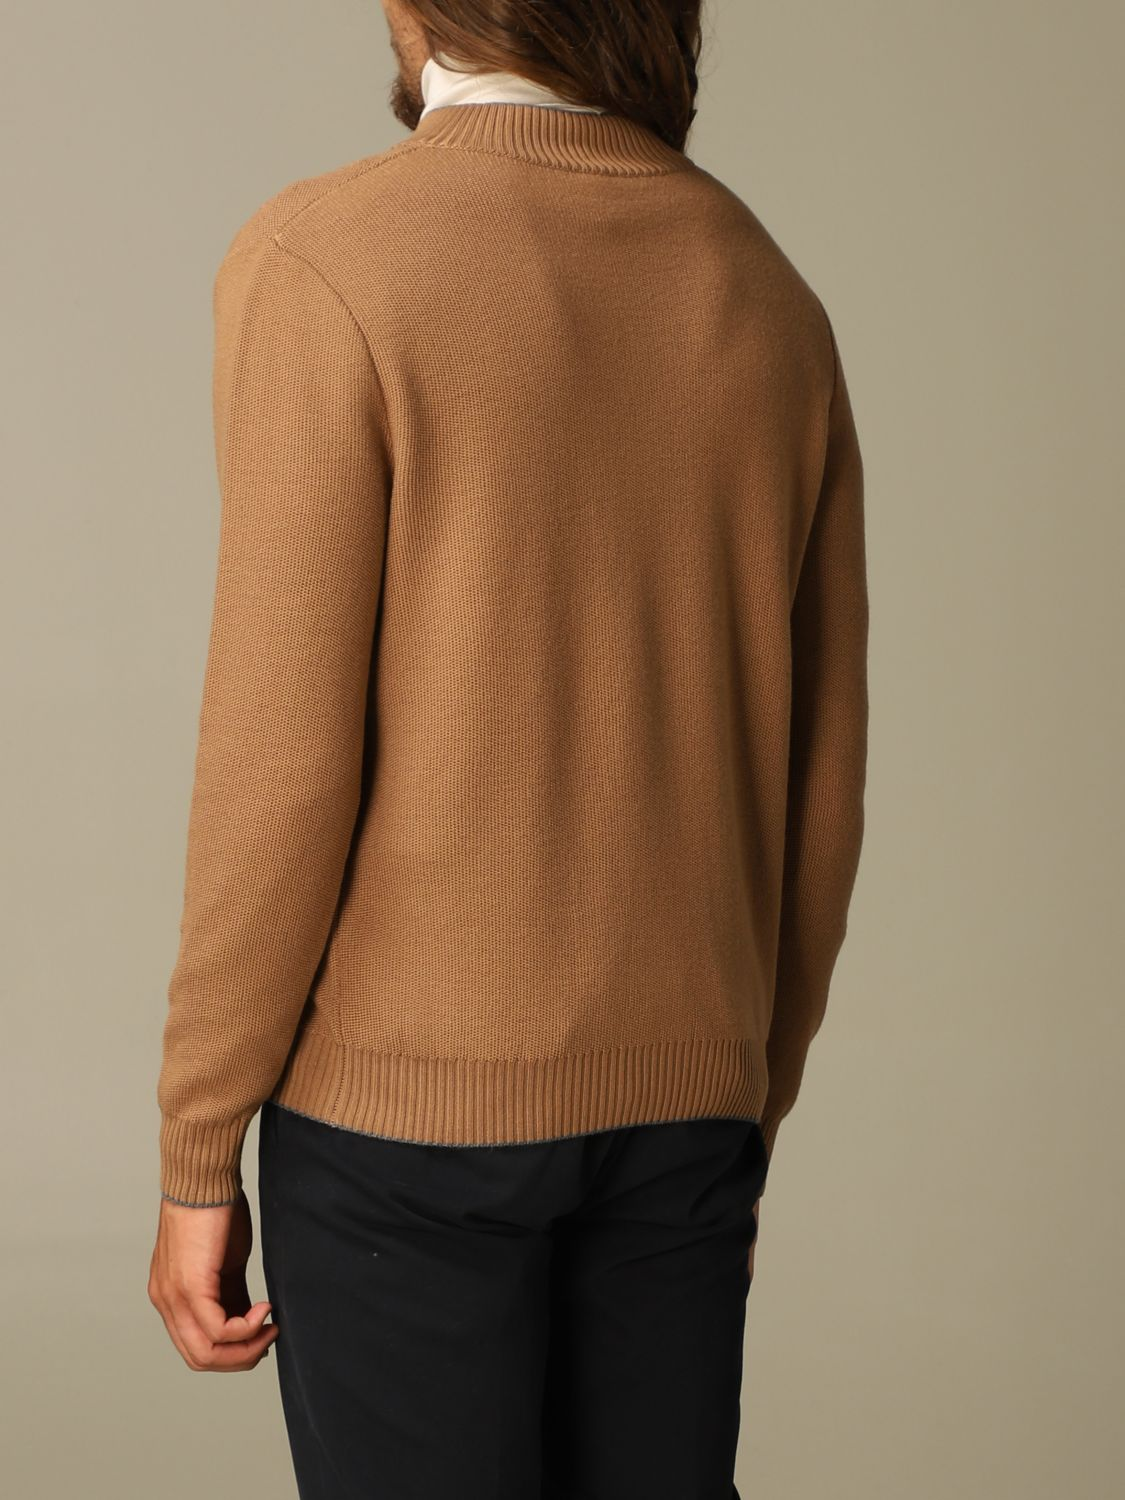 Sweater Eleventy: Eleventy cardigan in virgin wool camel 2